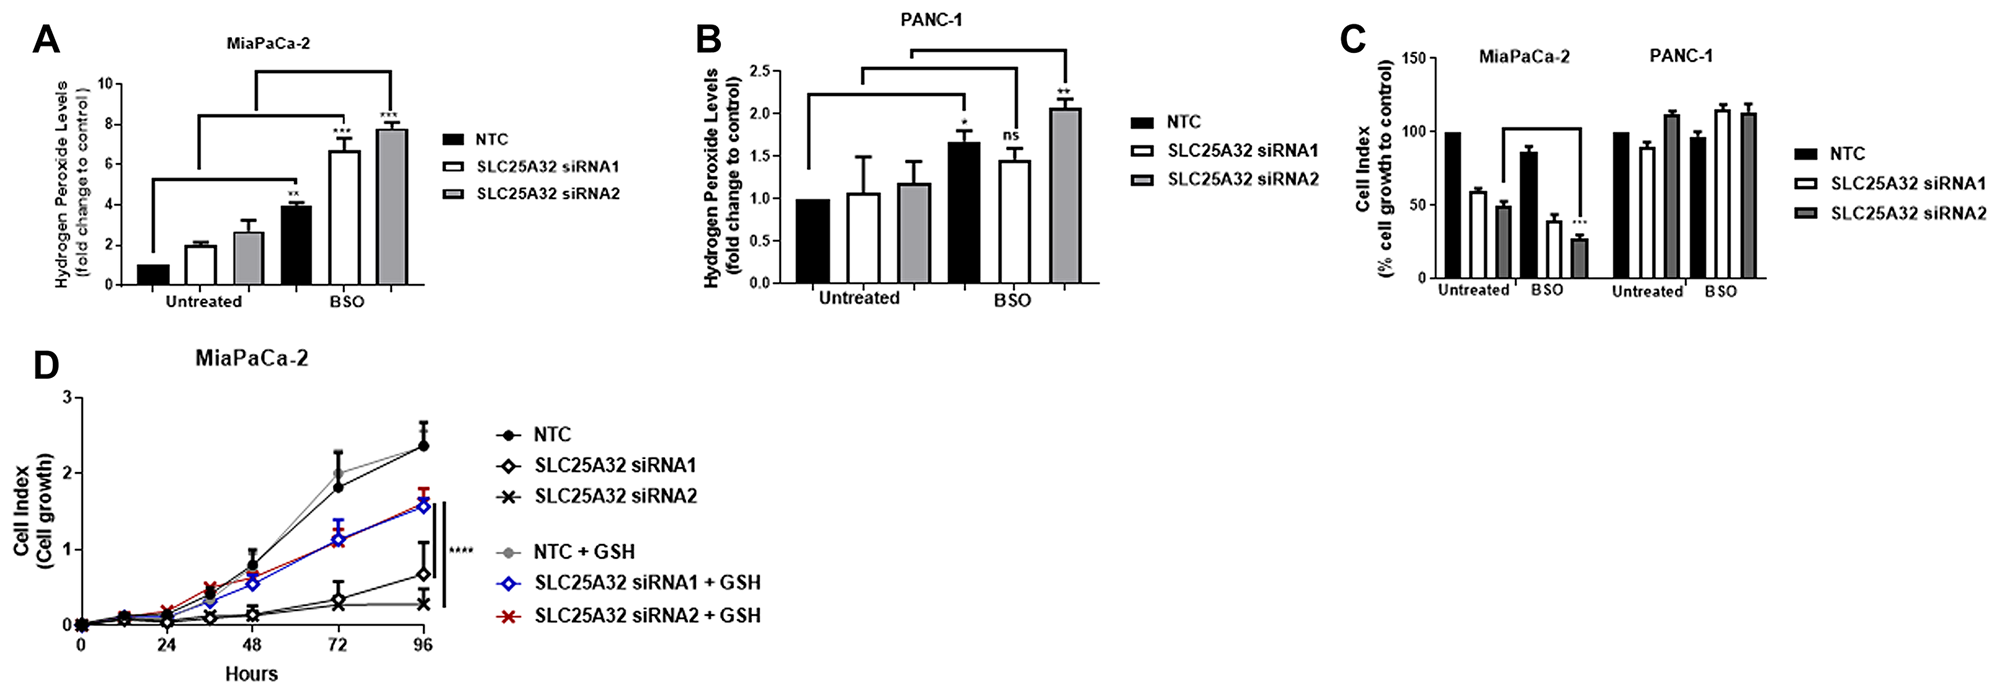 ROS-inducer BSO further sensitizes MiaPaCa-2 cells to SLC25A32 inhibition.